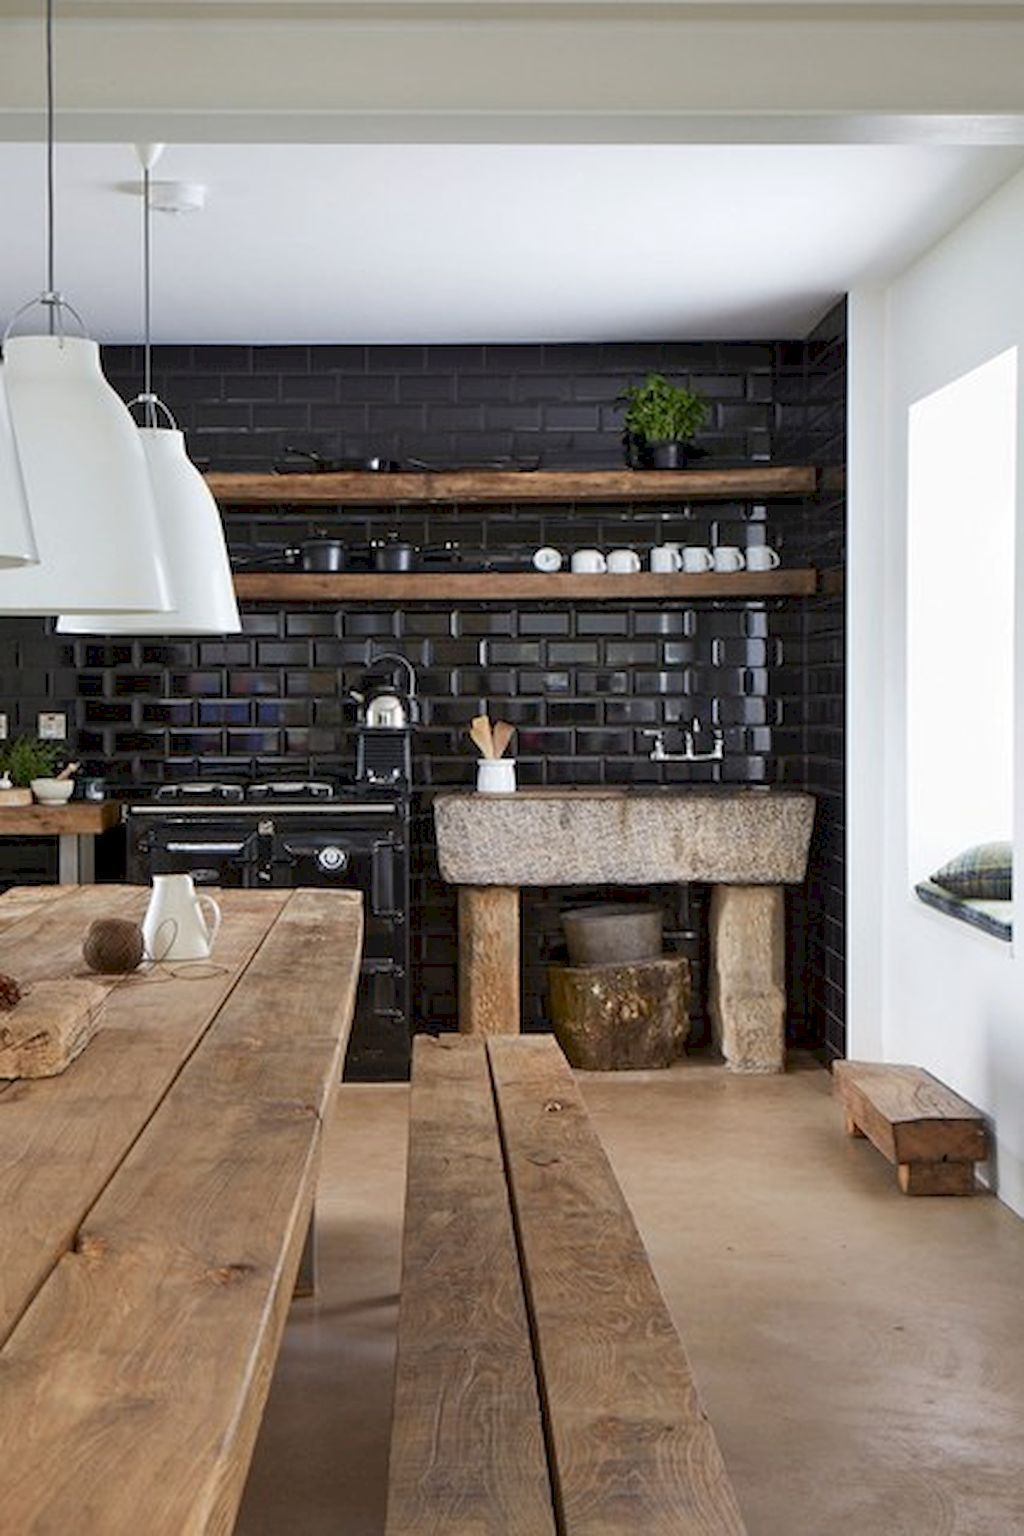 60 stunning rustic kitchen decorating ideas and remodel galley kitchen remodel rustic on kitchen makeover ideas id=50208